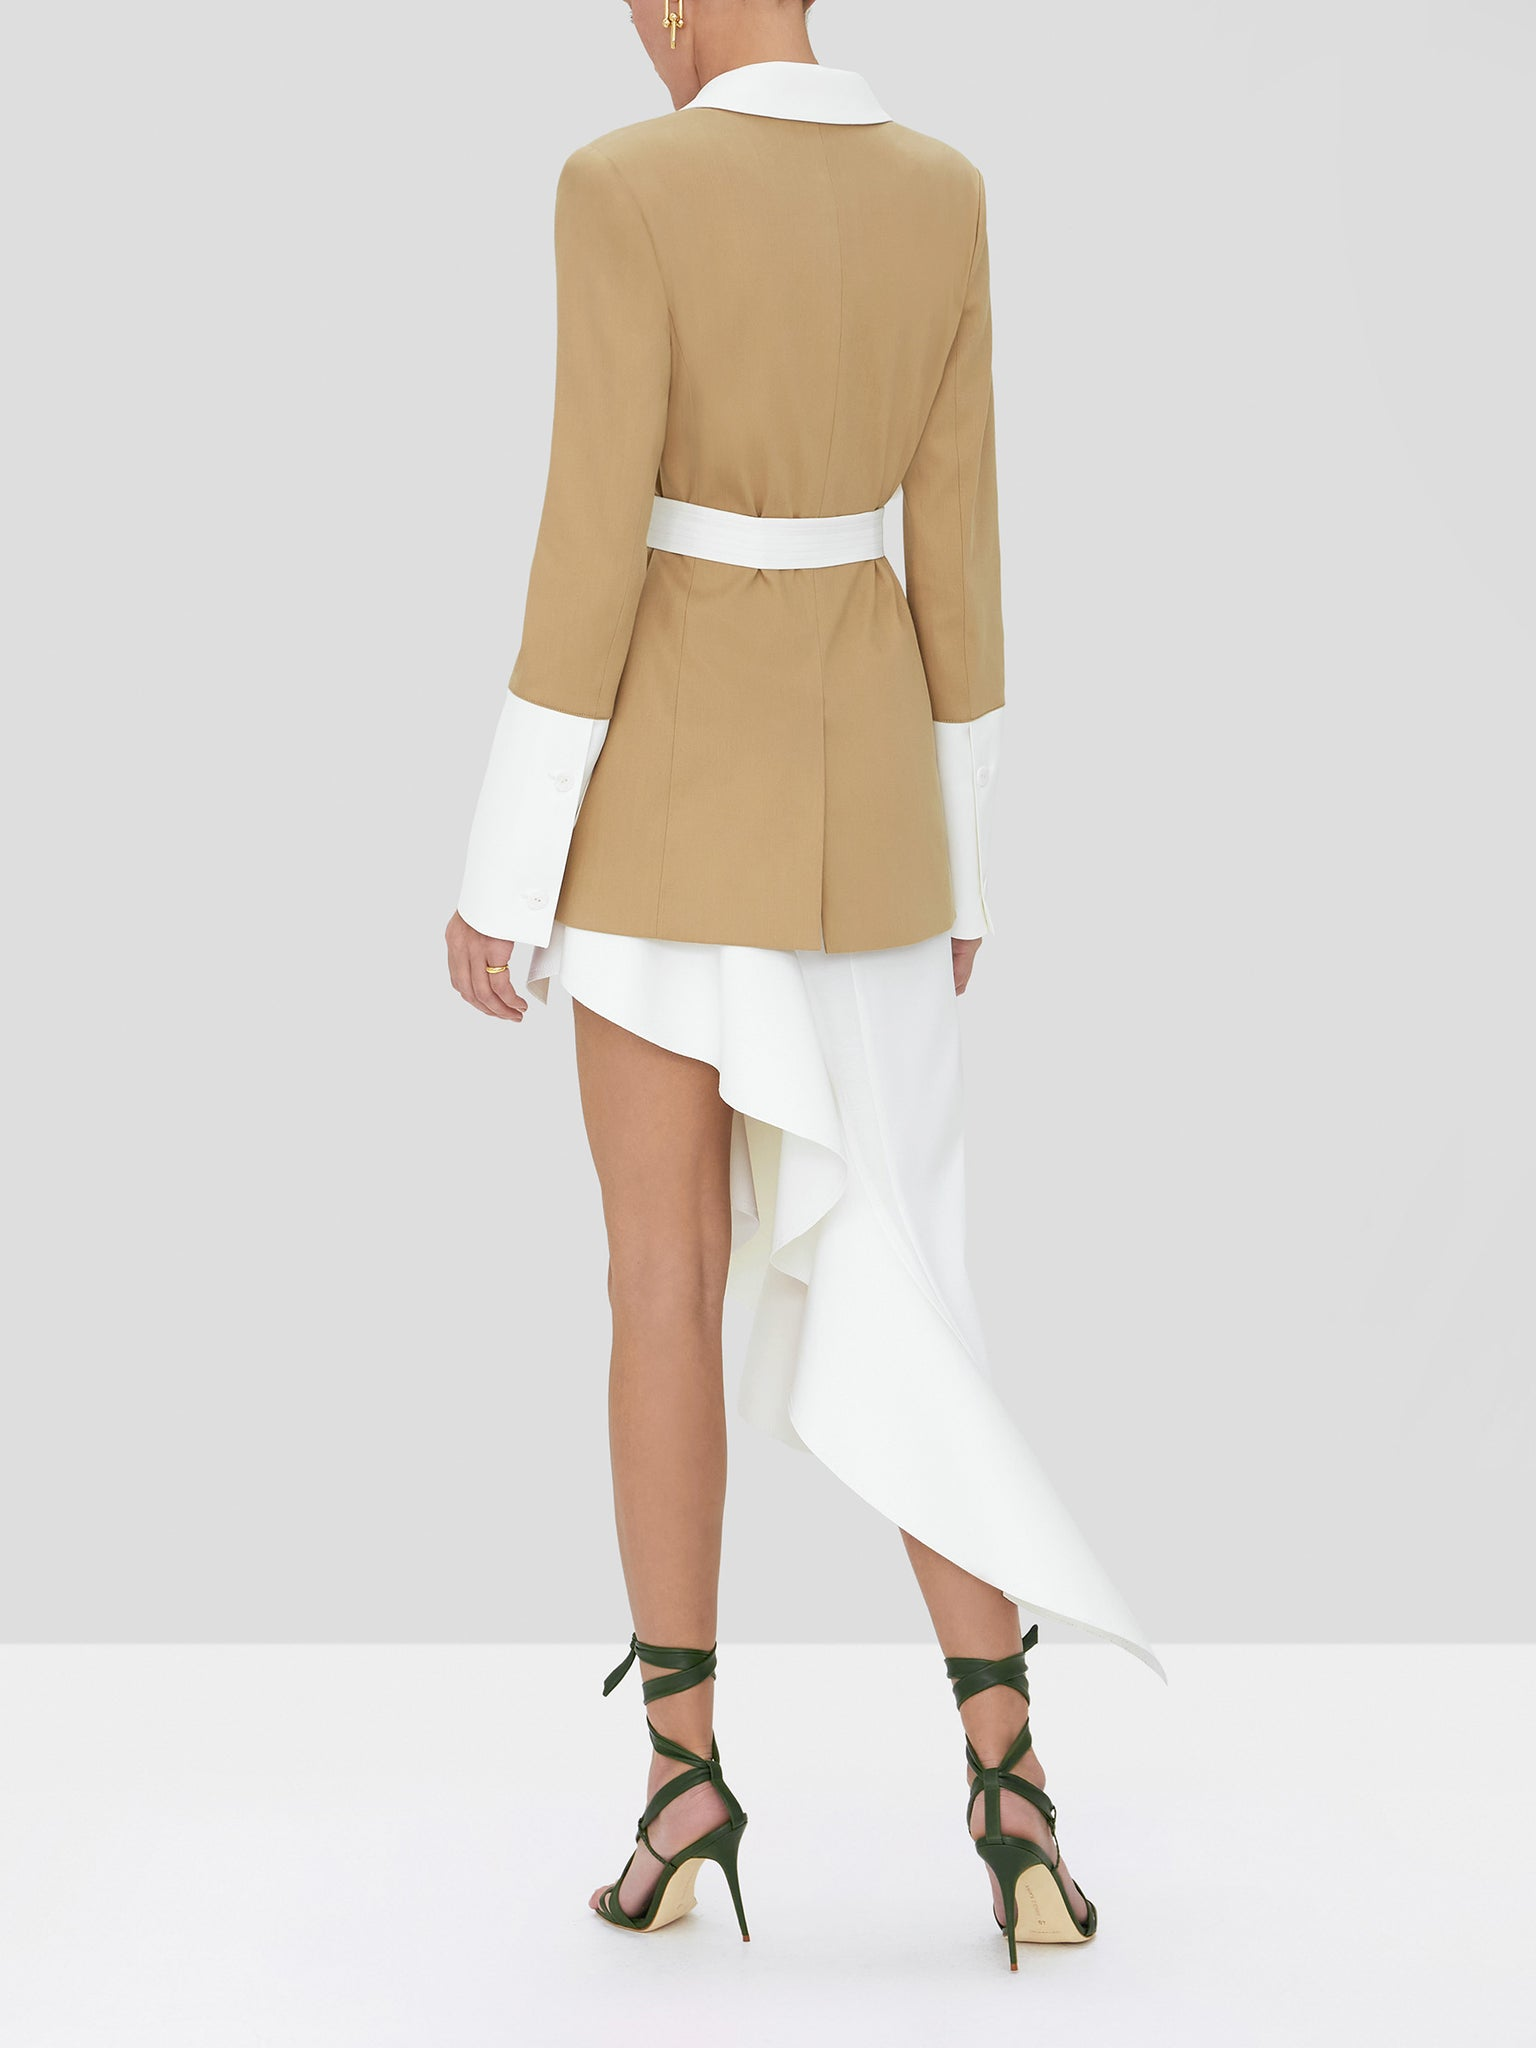 The Alexis Baccio double breasted jacket in tan and white - Rear View